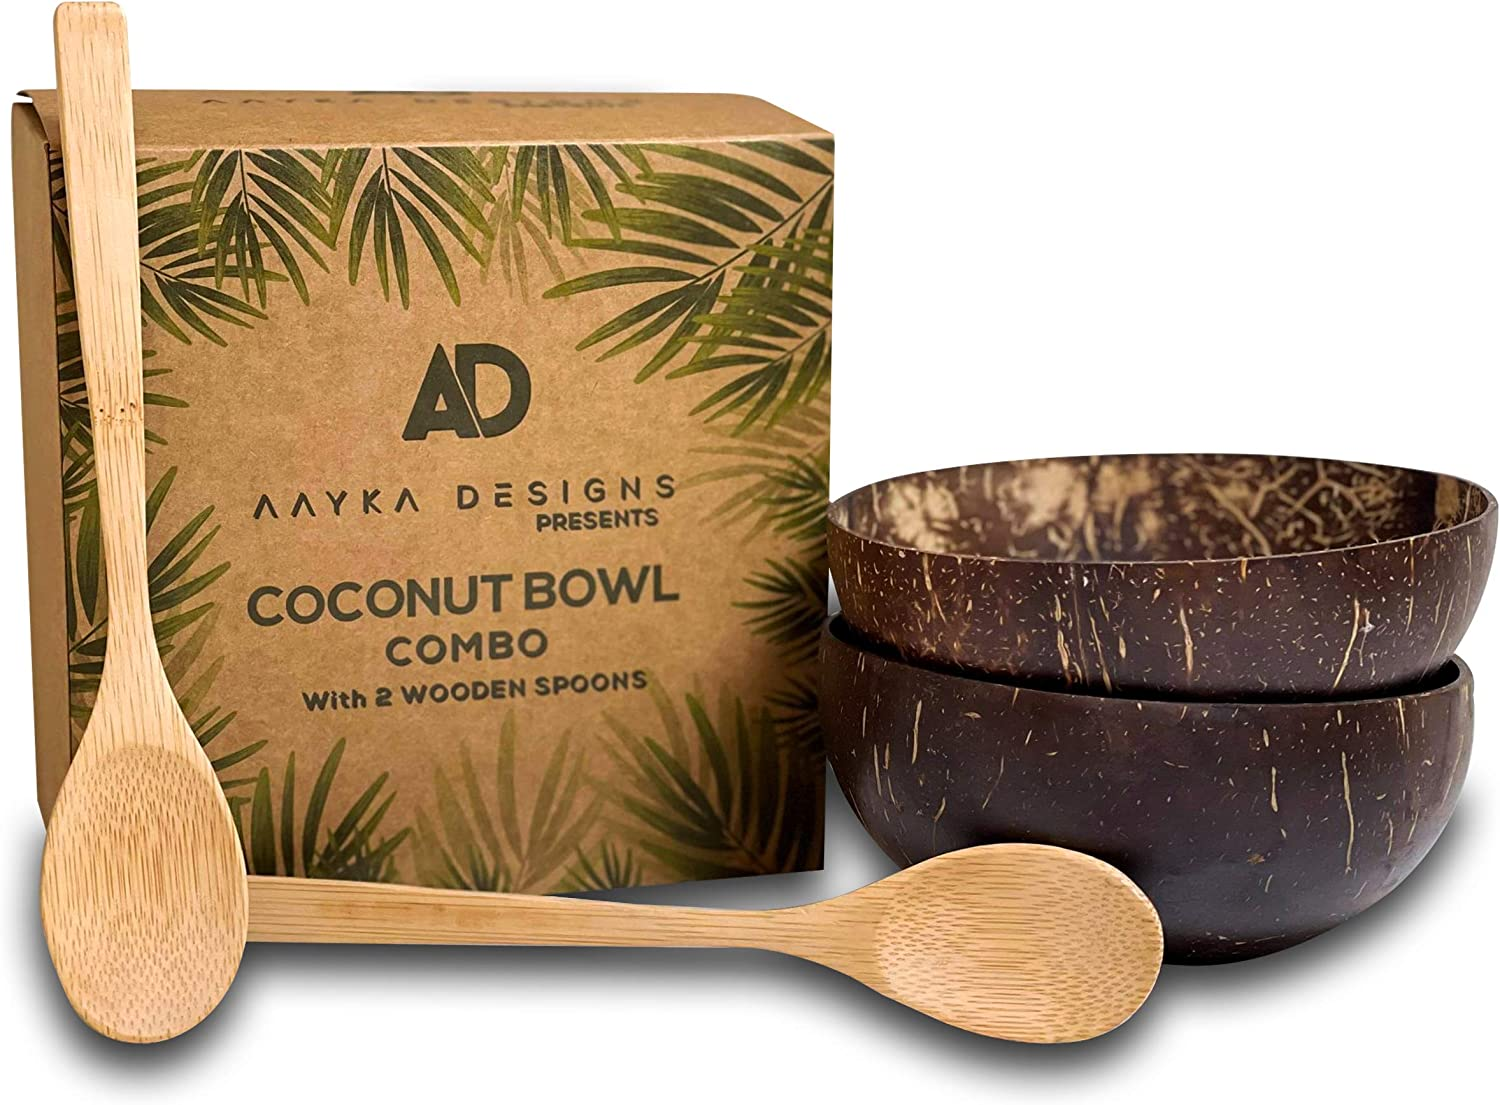 Aayka designs 2 Coconut Bowls With 2 Bamboo Spoons For Salad, Smoothies, Acai Or Buddha Bowl, Polished And Handmade